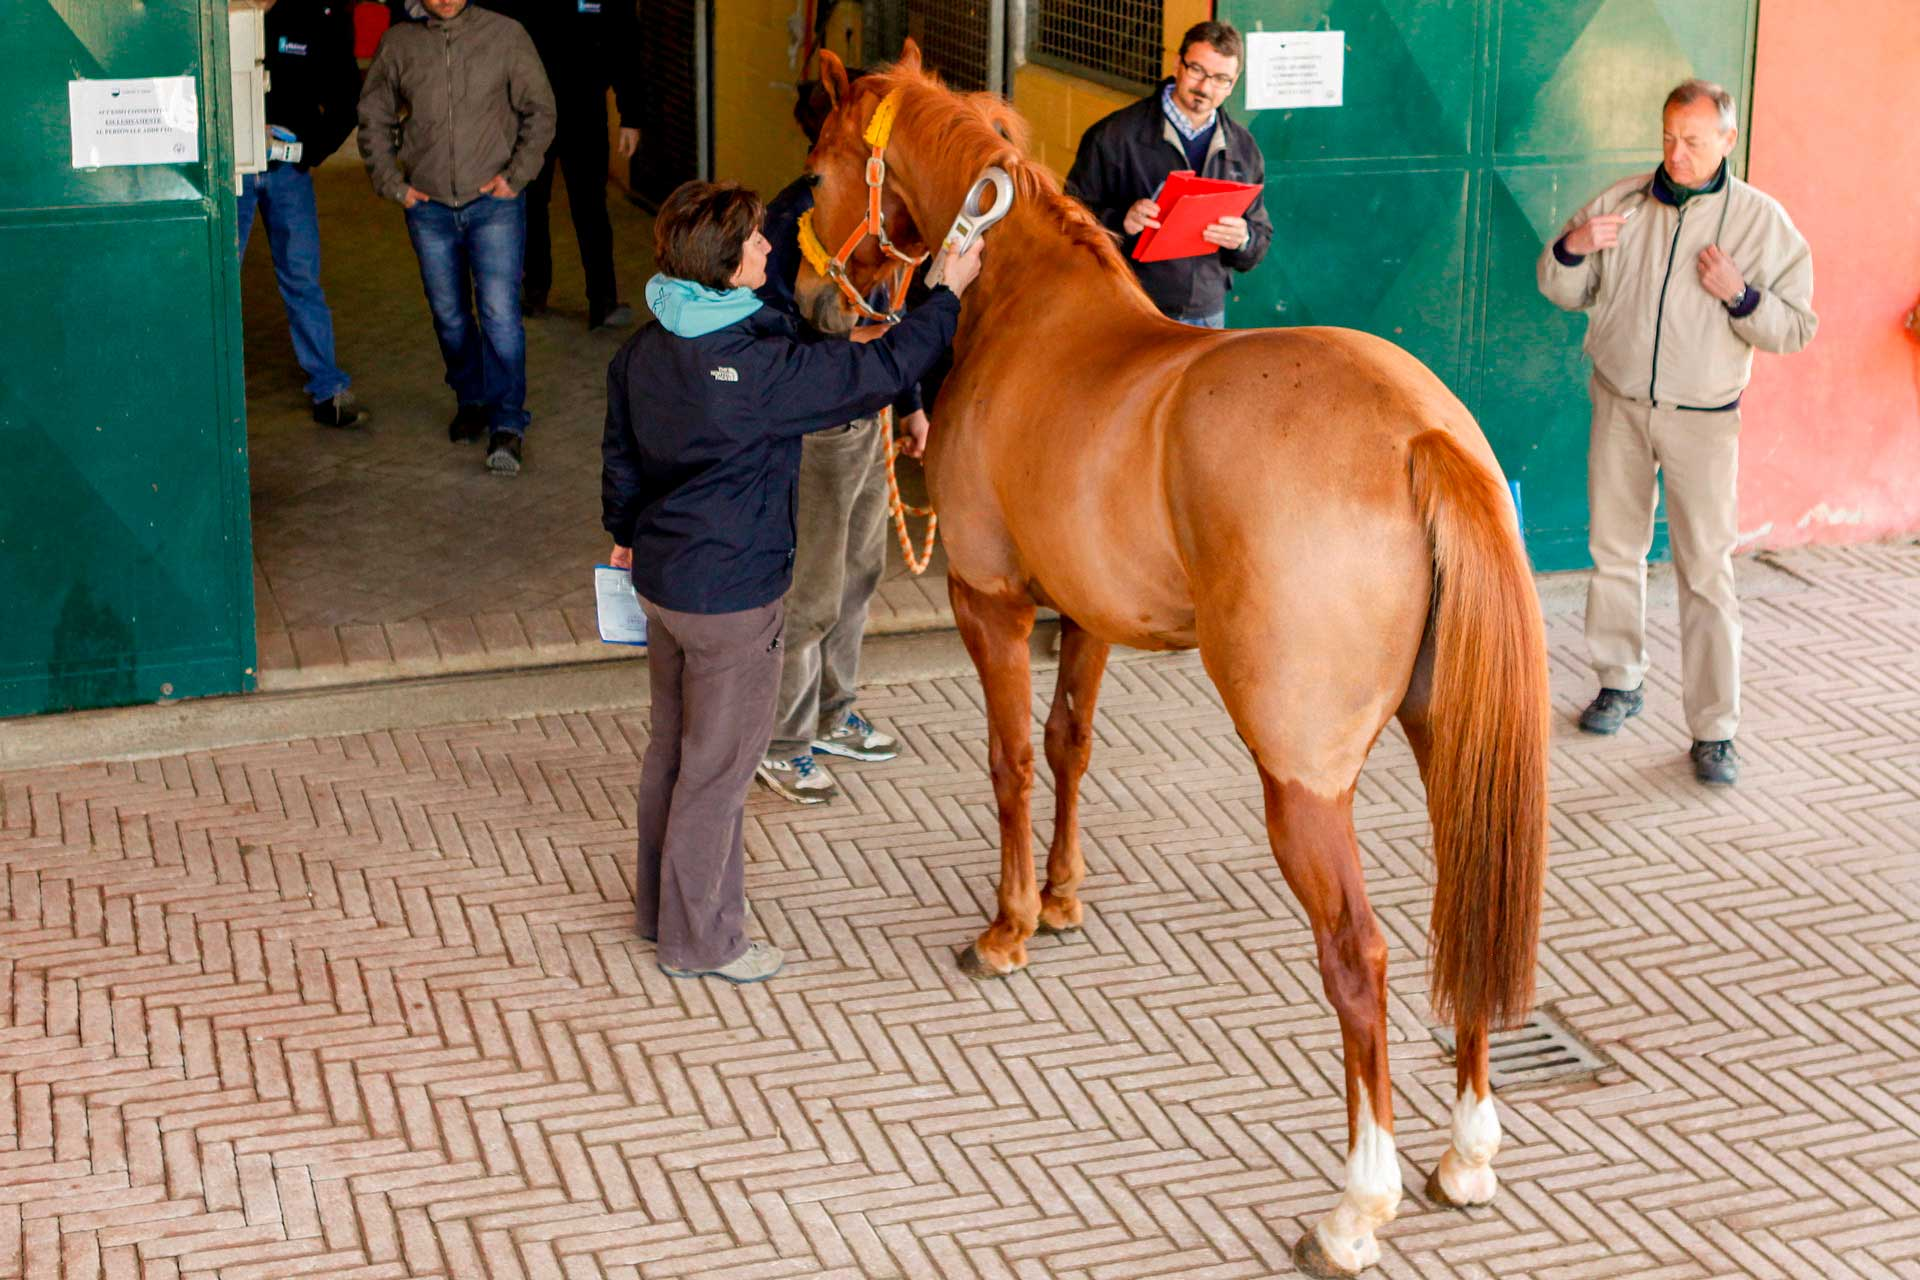 VETERINARY PRE-EXAMINATIONS - The horse is identified by electronic reading of the microchip applied under the mane.